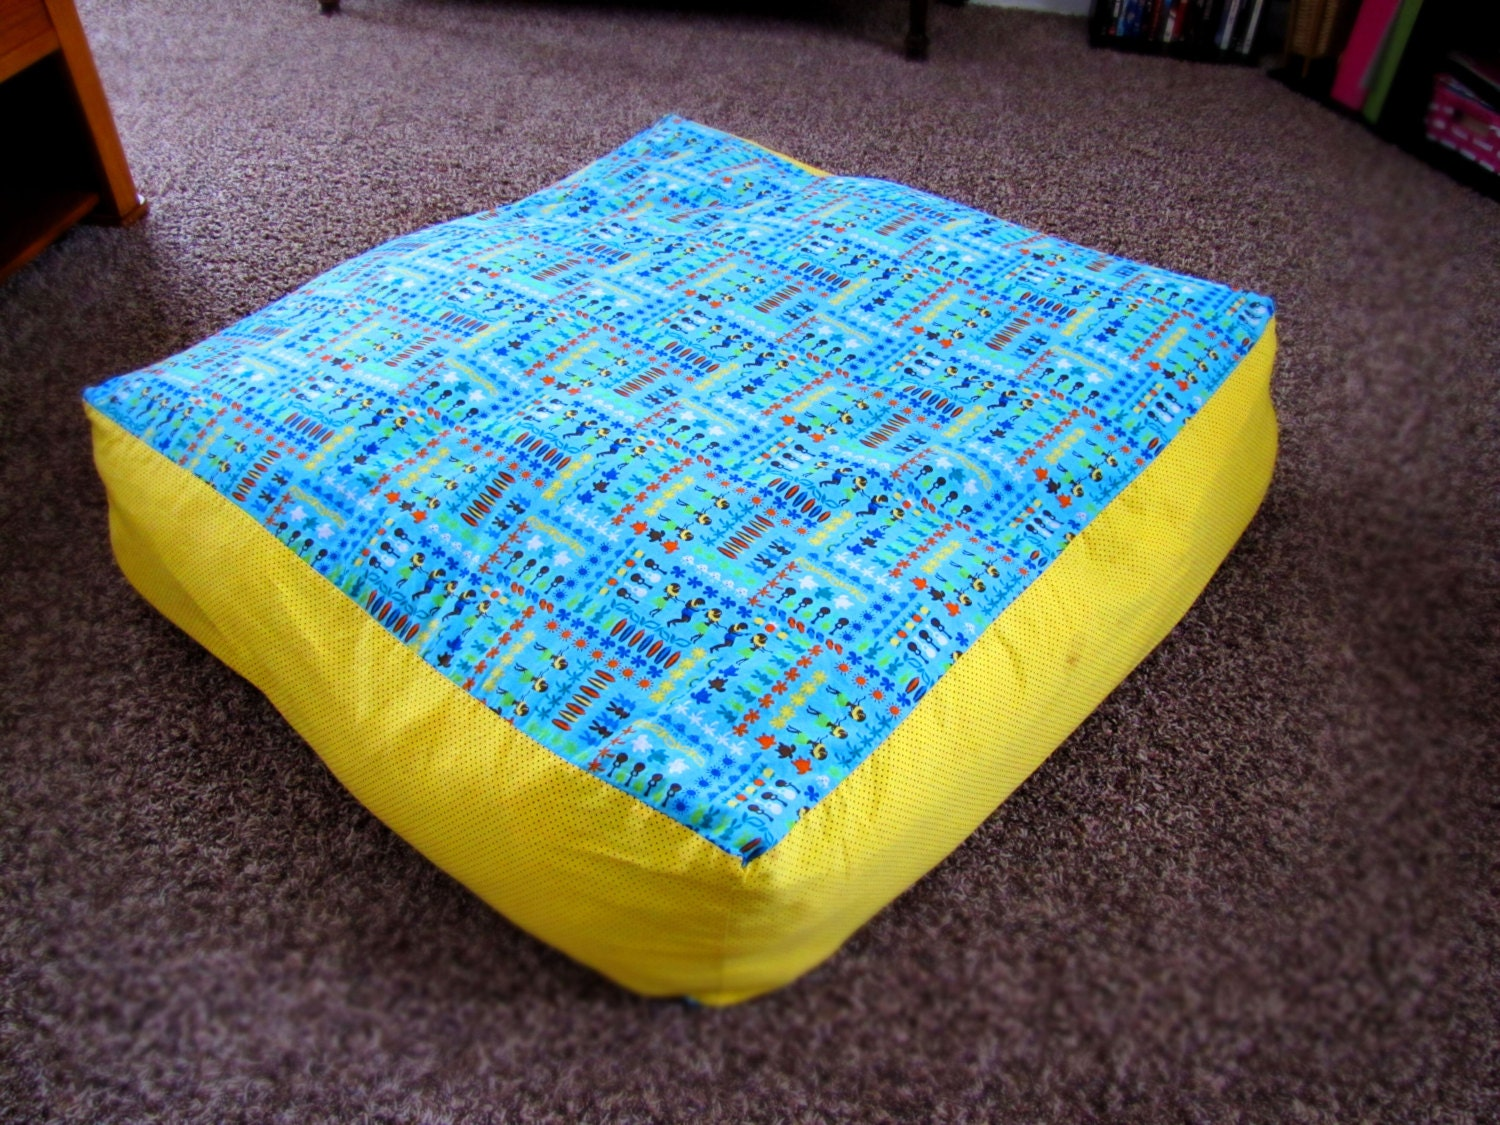 Zippered Floor Pillows : Customized Giant Floor Pillow Cover w/ zipper by HugsLove on Etsy